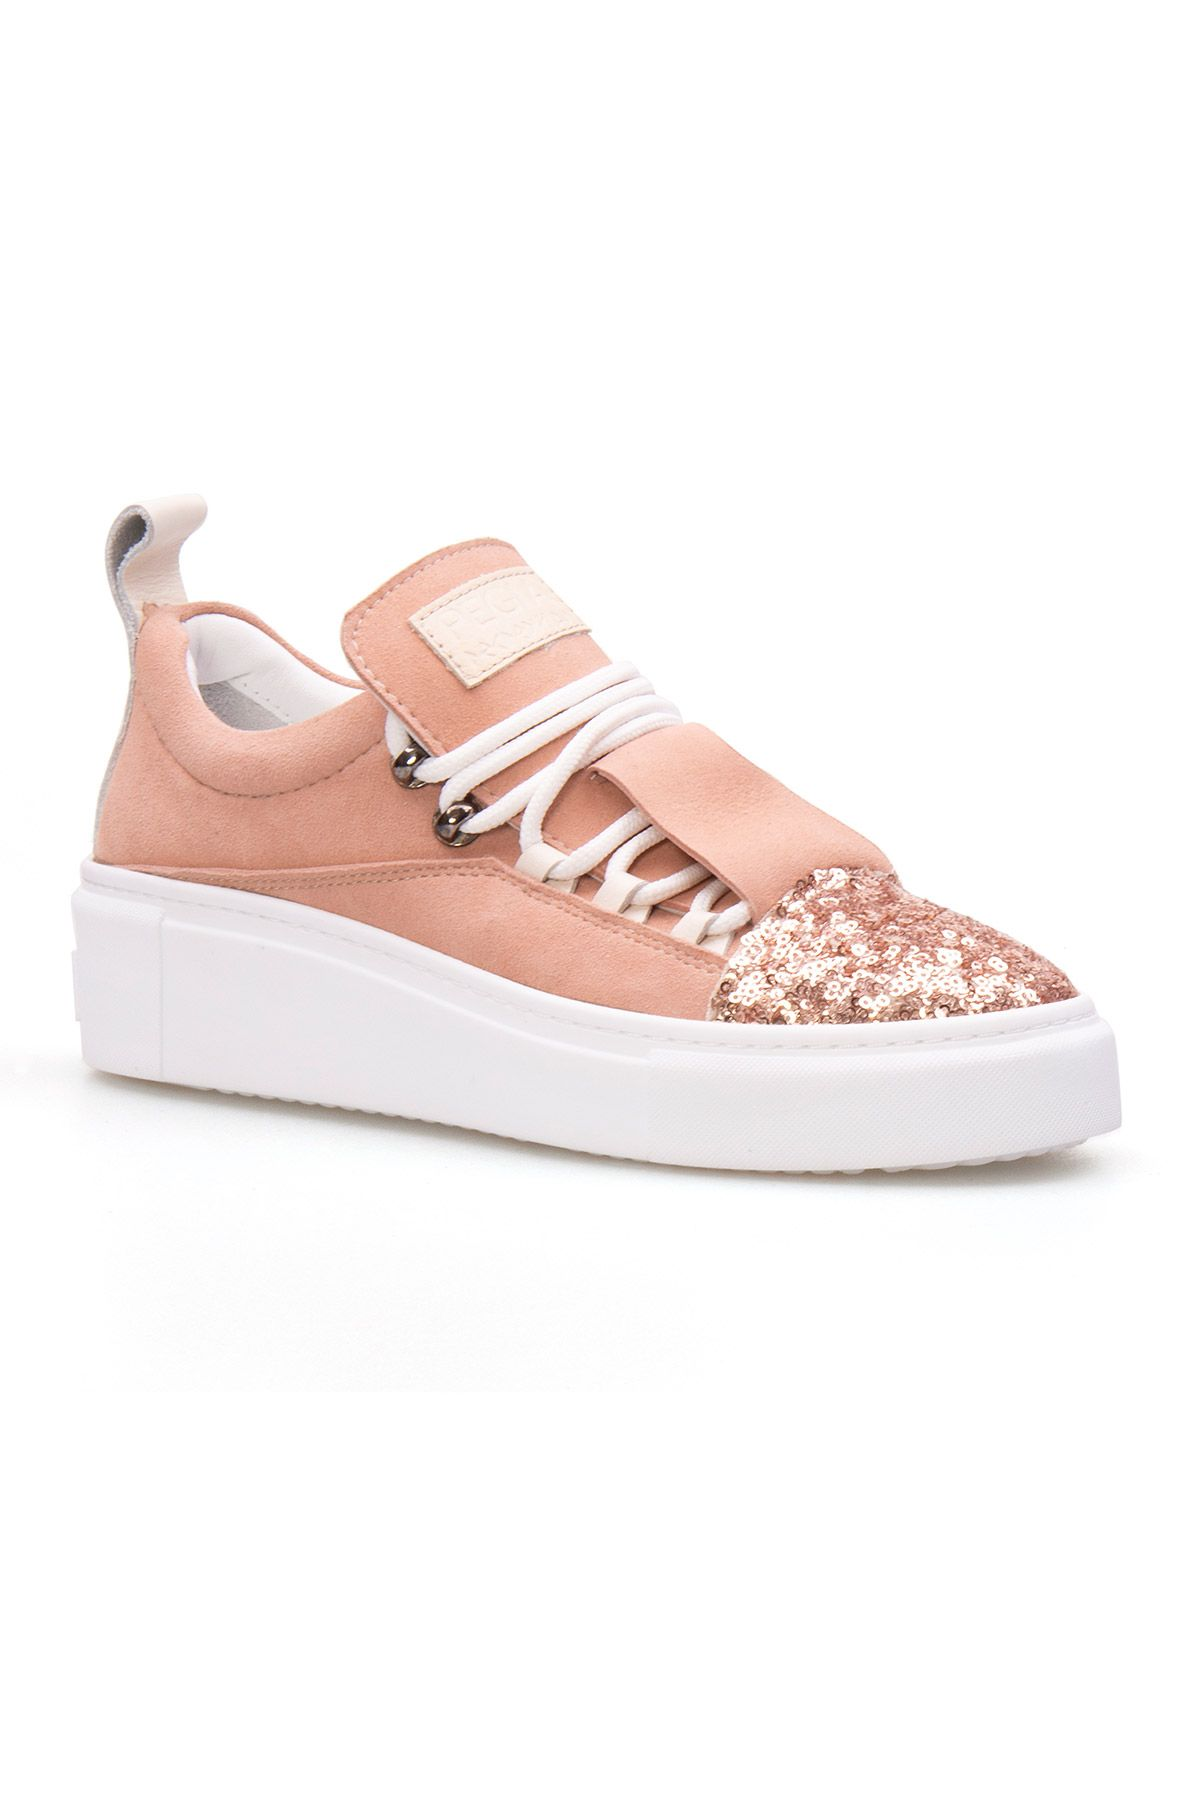 Pegia Genuine Leather Sequined Women's Sneaker LA1704 Powdery